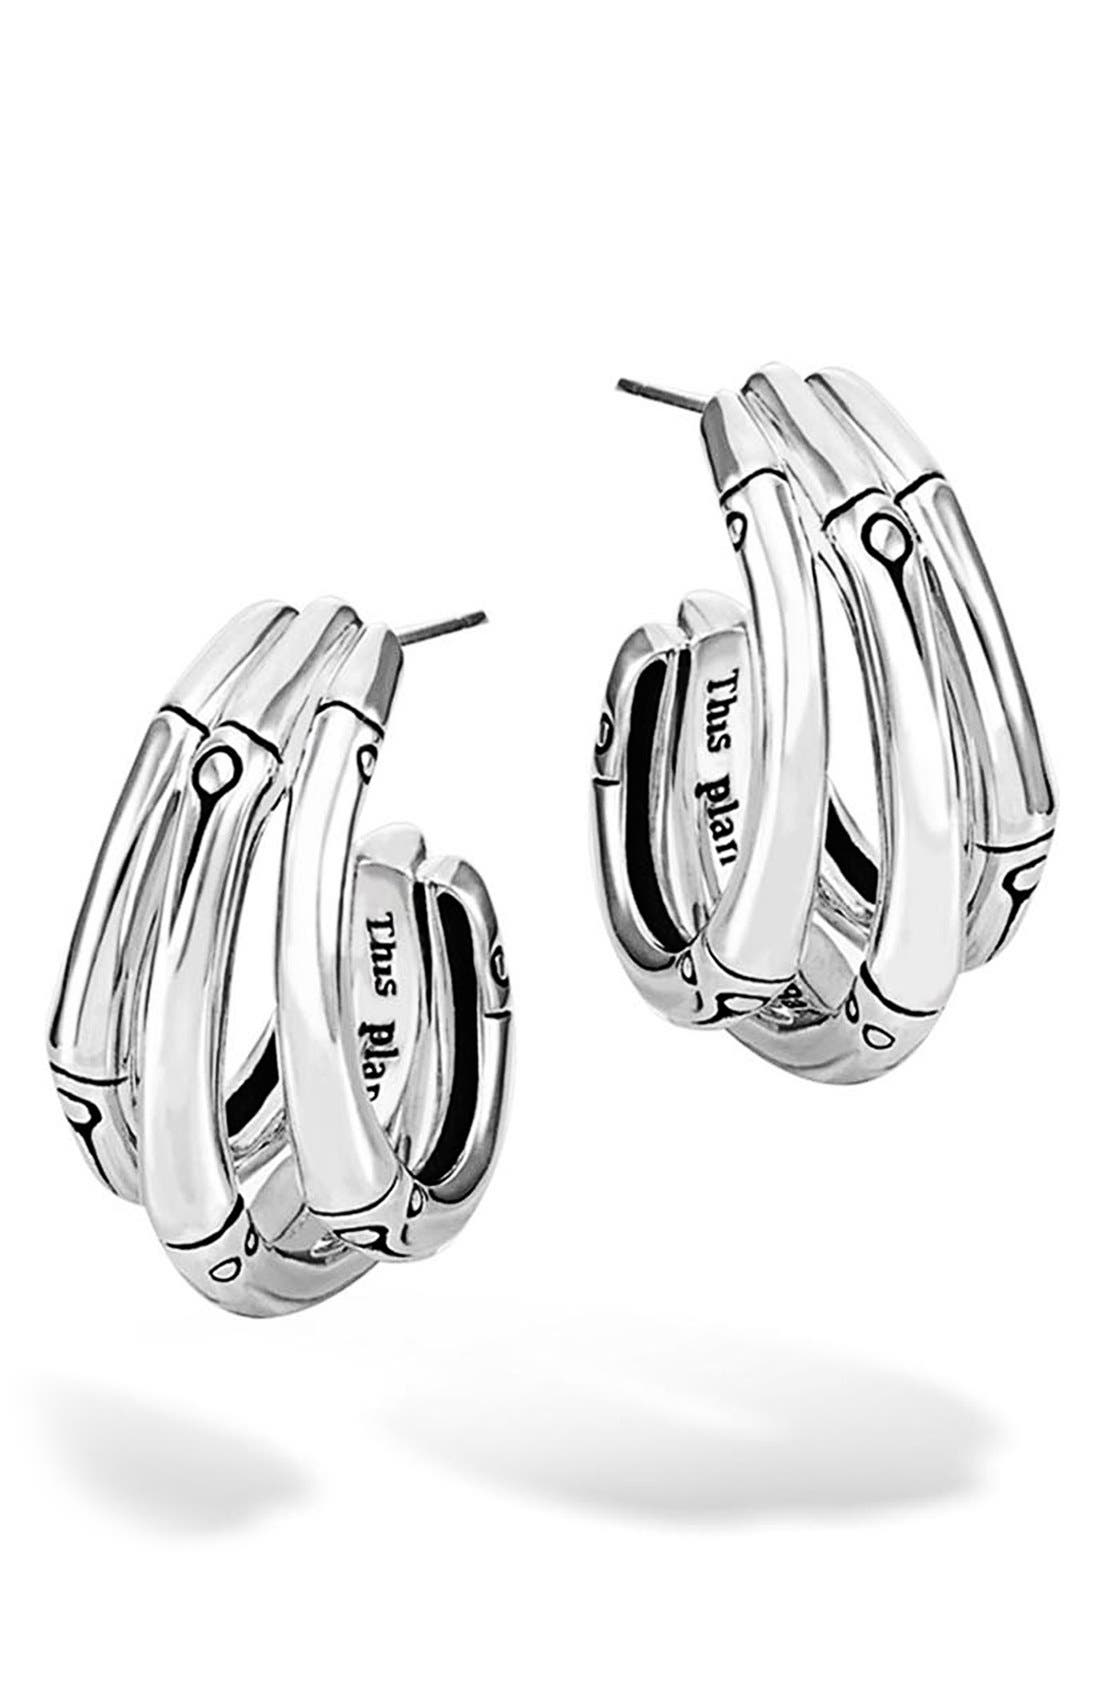 Main Image - John Hardy Bamboo Small Hoop Earrings